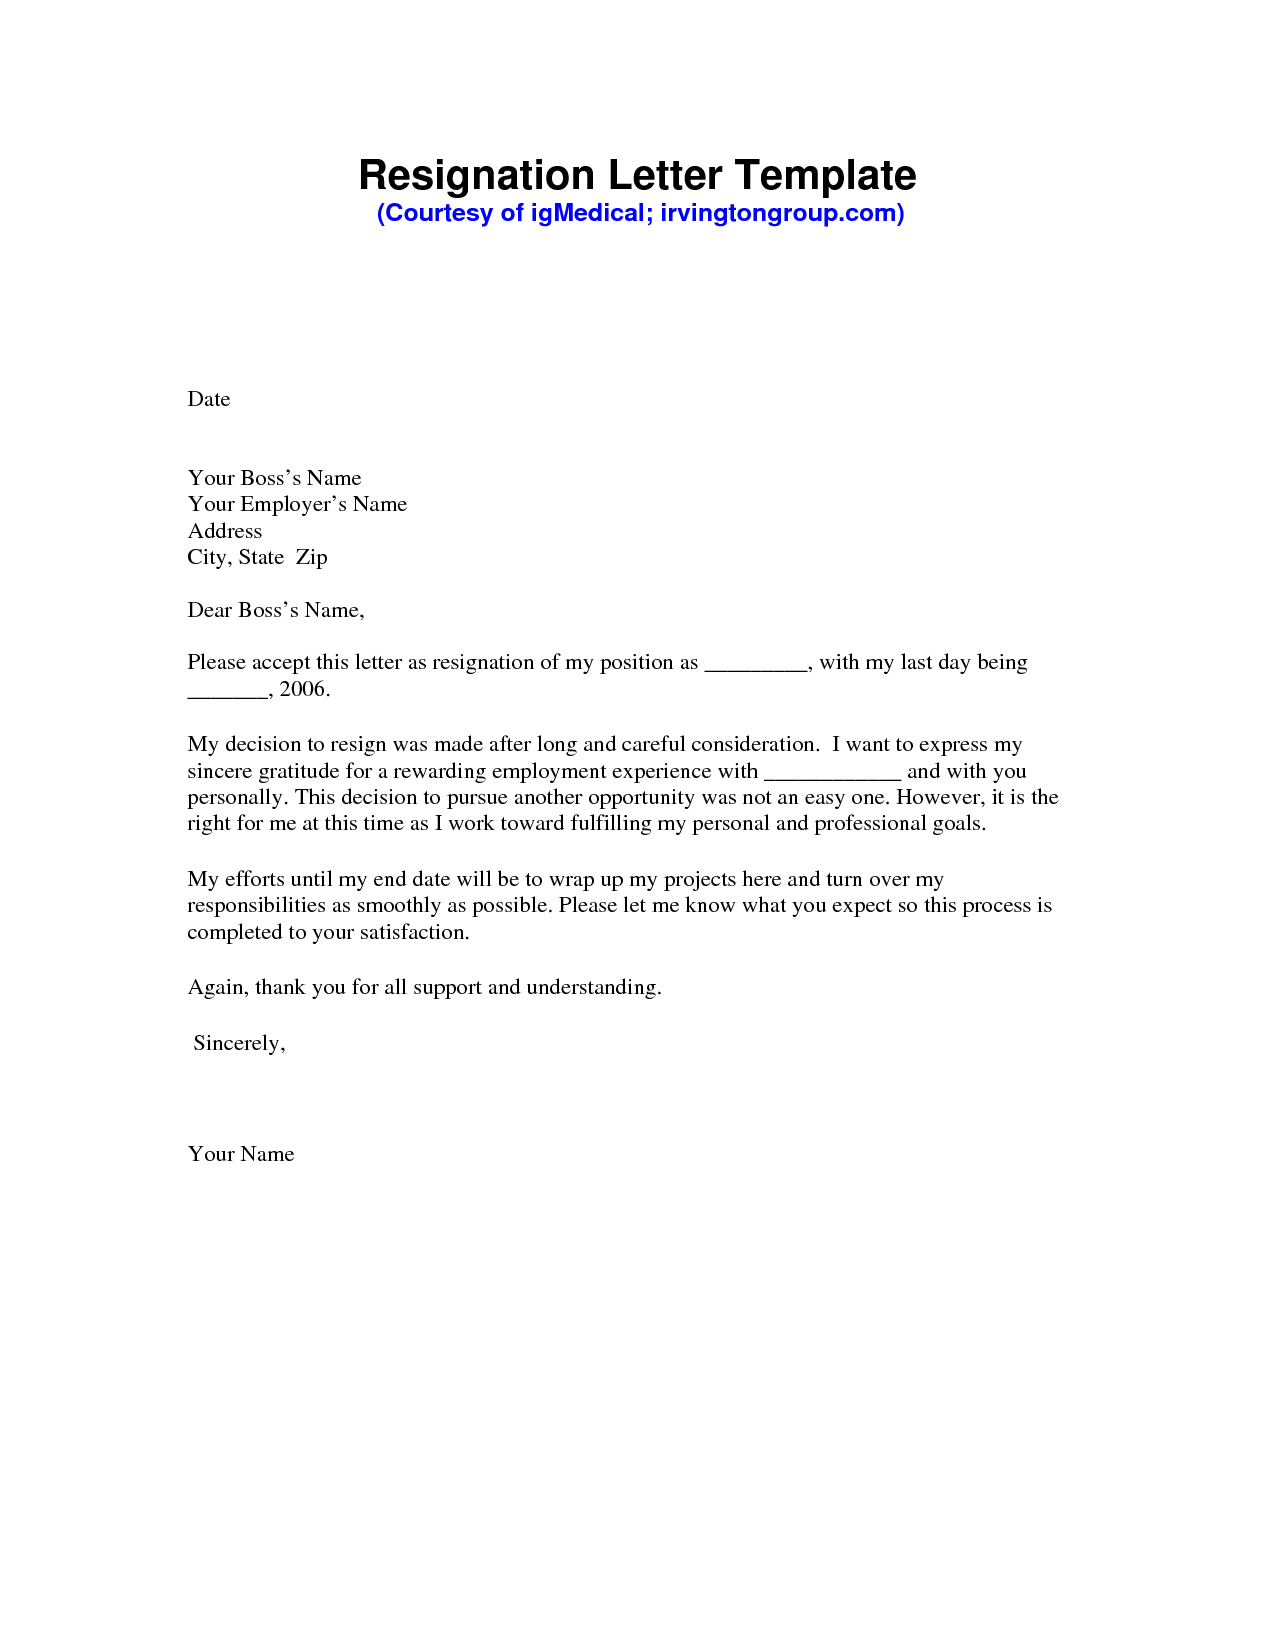 resignation letter sample pdf resignation letter best photos of template of resignation letter in word resignation letter format template word board resignation letter sample and sample resignation